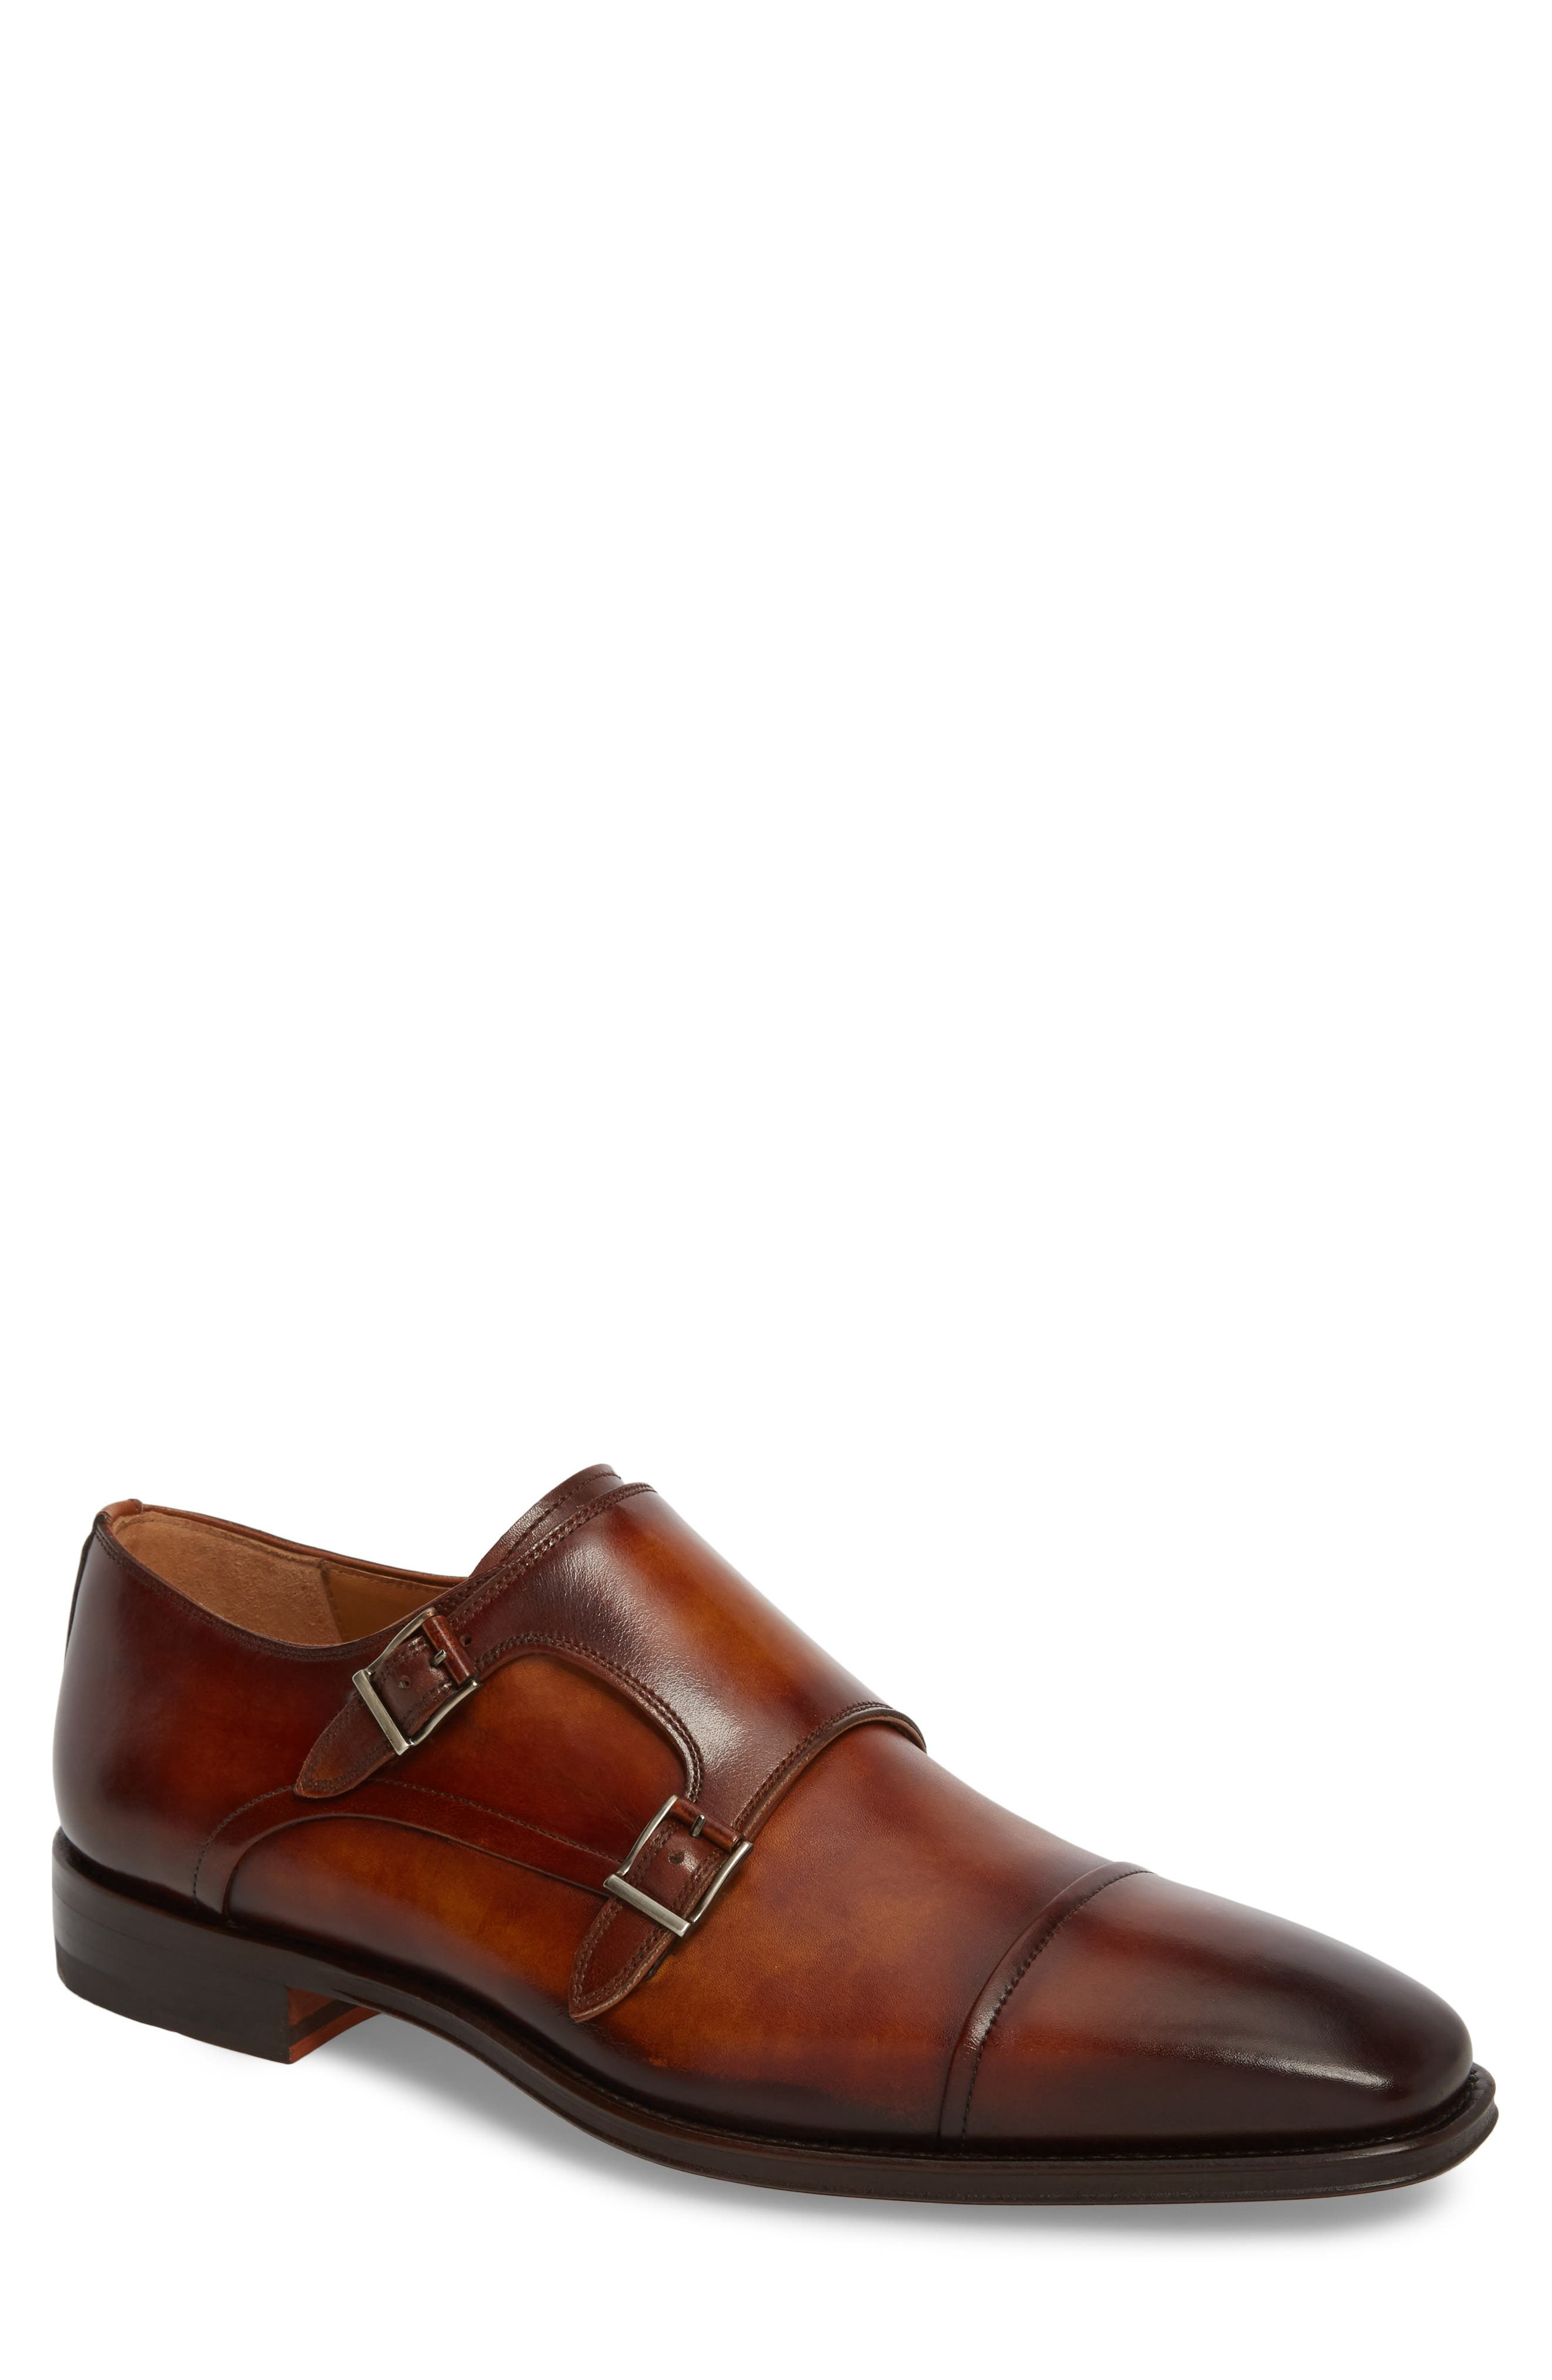 Silvio Double Monk Strap Shoe,                         Main,                         color, 230